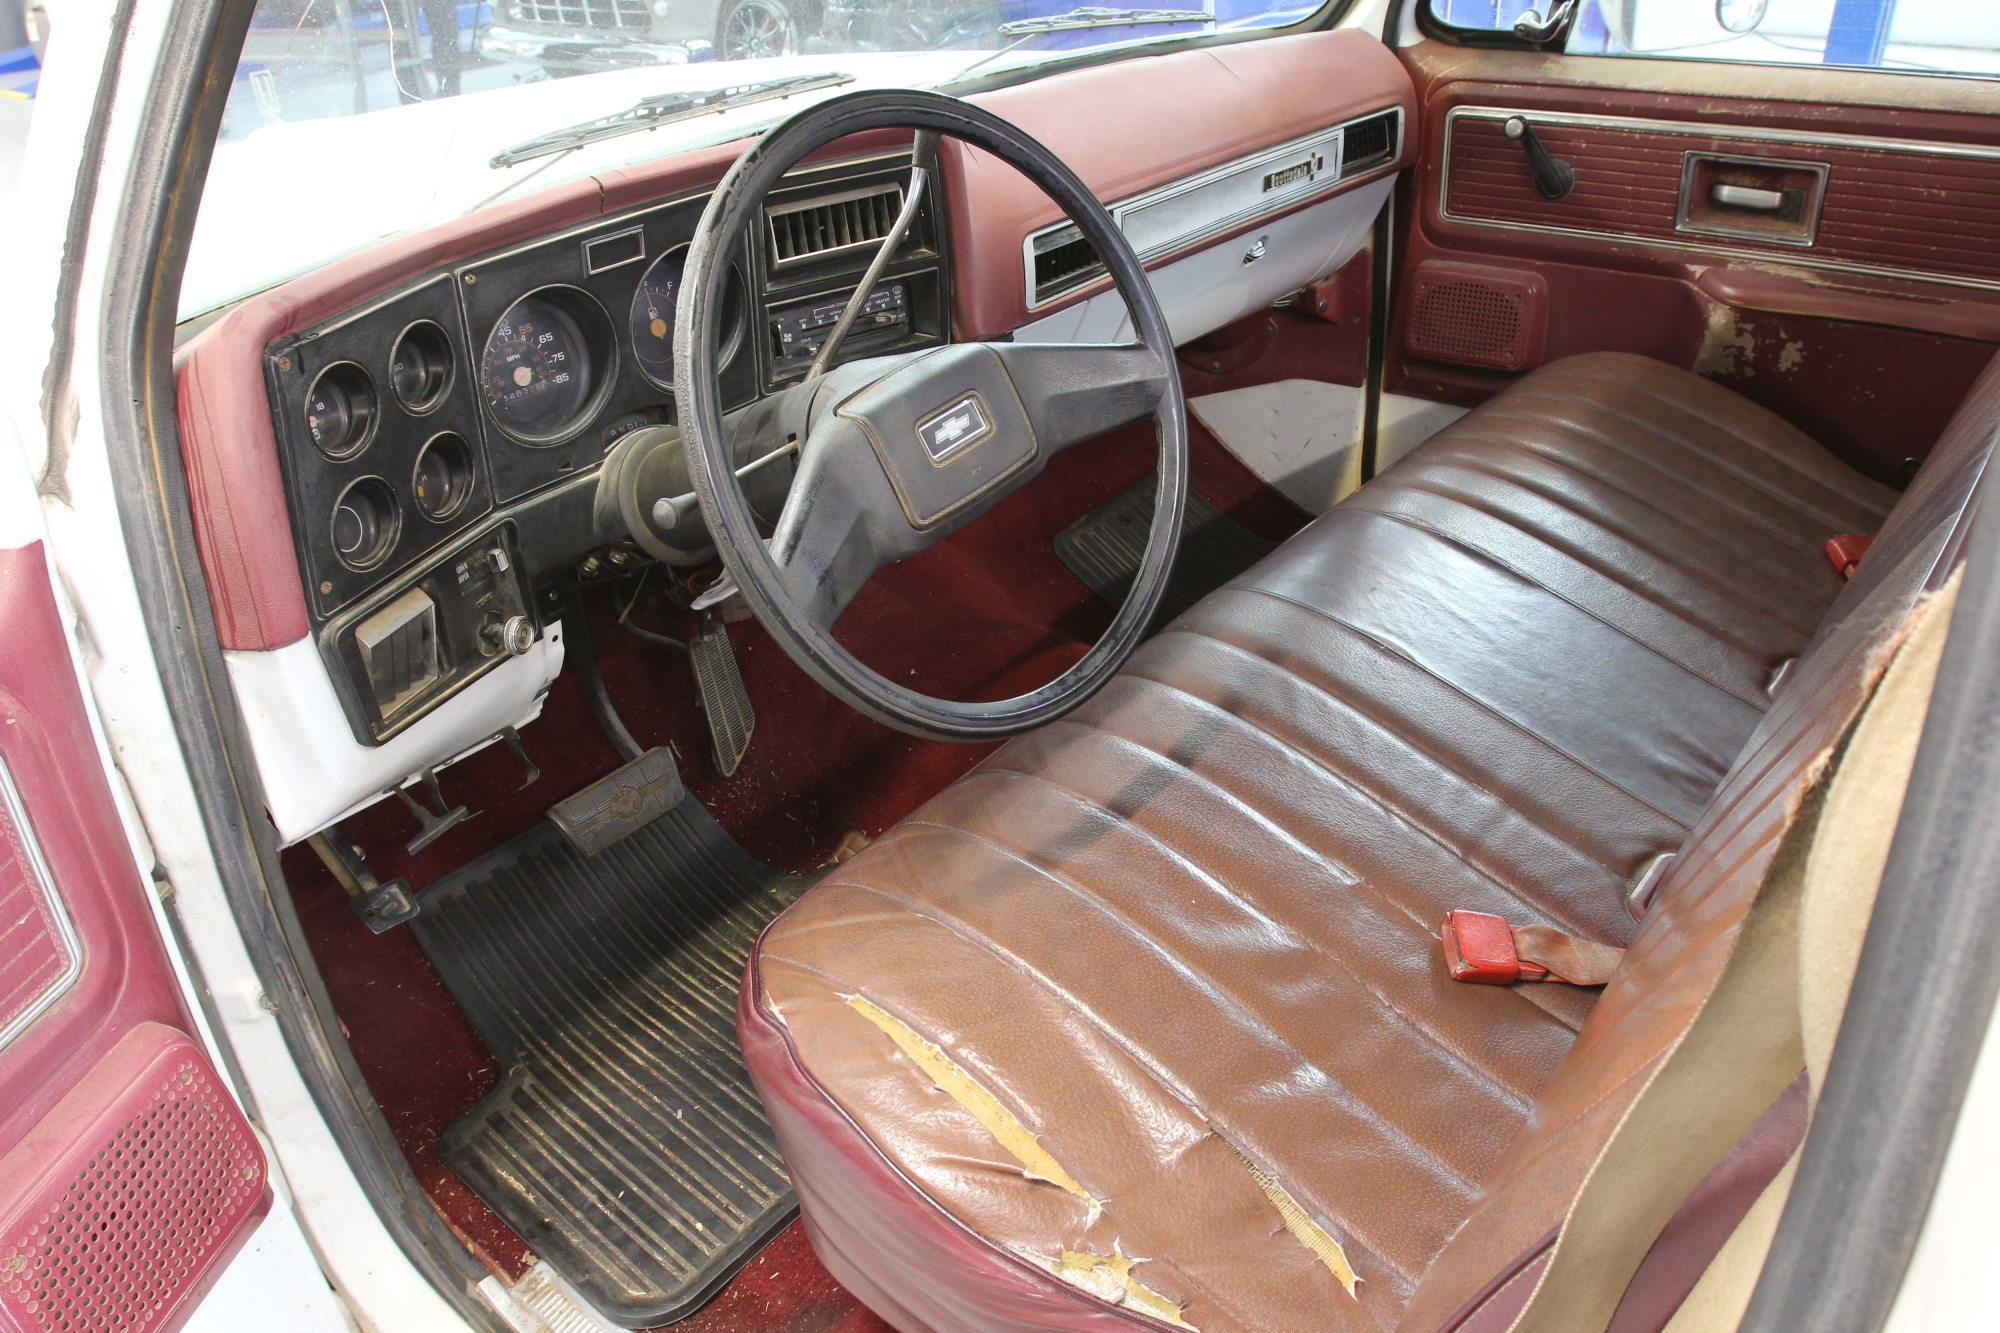 hight resolution of the interior of the c10 was pretty tore up when i purchased the truck the